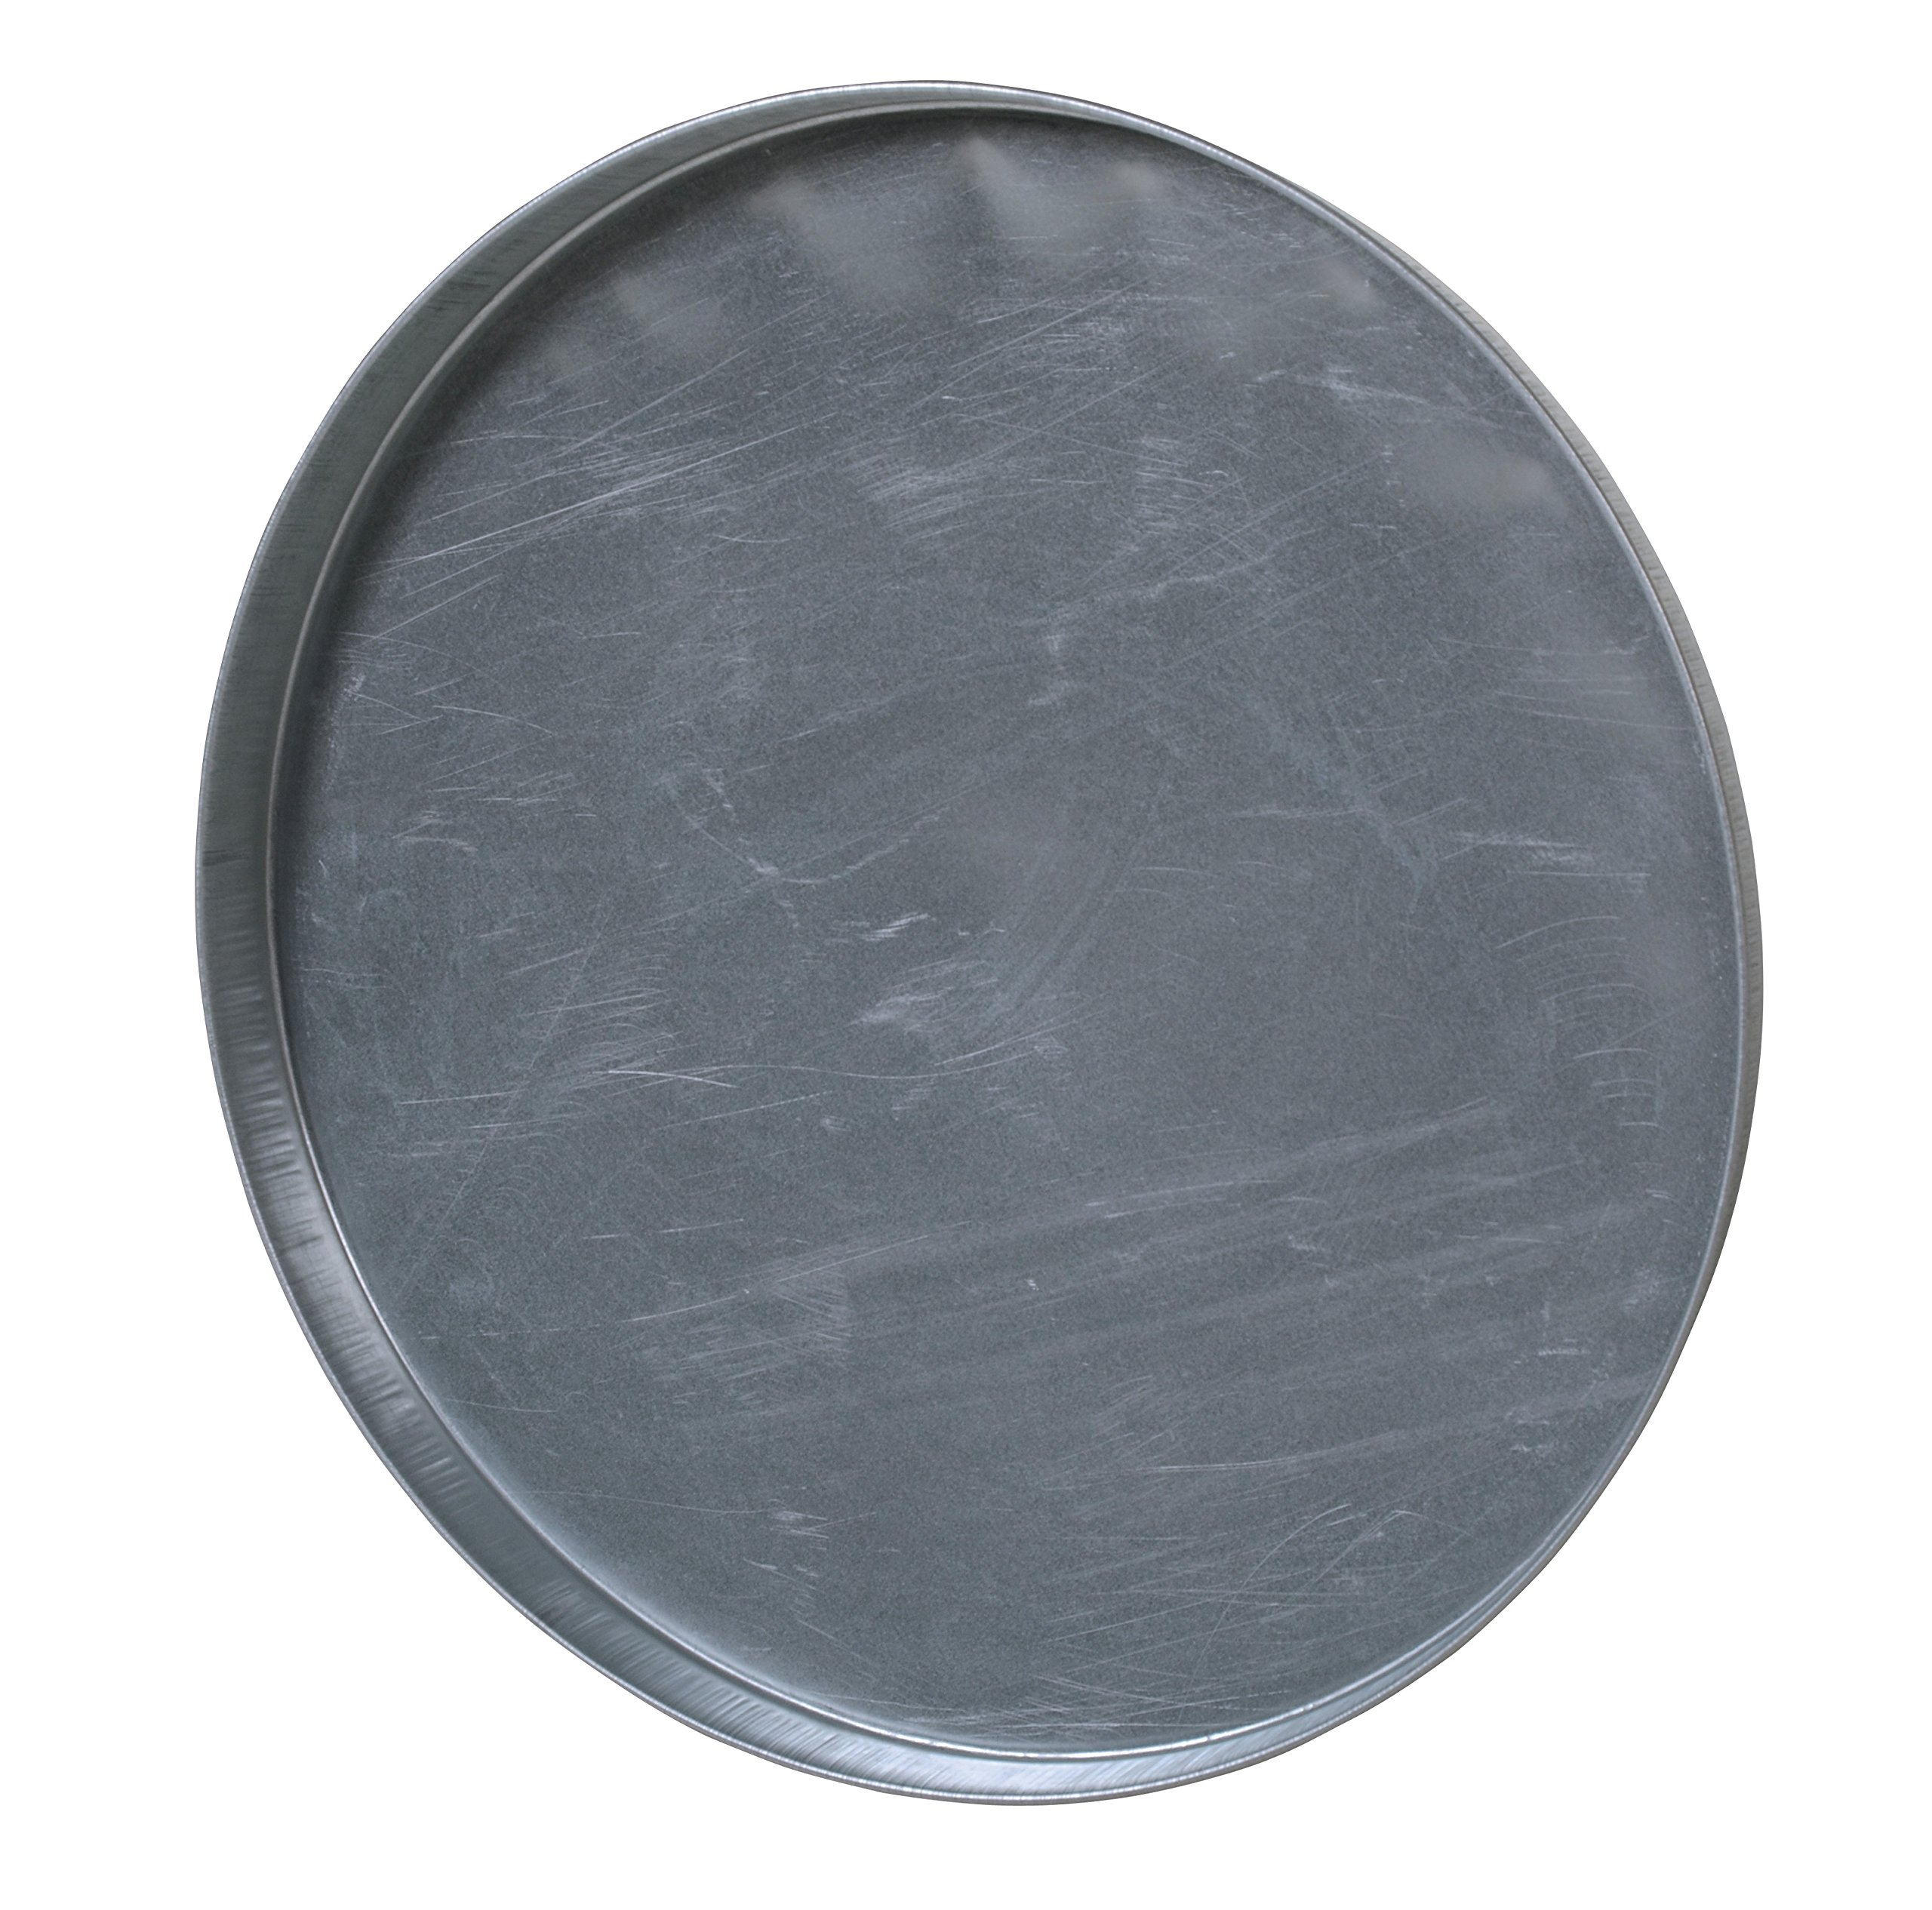 Vestil DC-235 Closed Head Galvanized Steel Drum Cover for use with 55 gallon Drum, 24-1/2'' ID